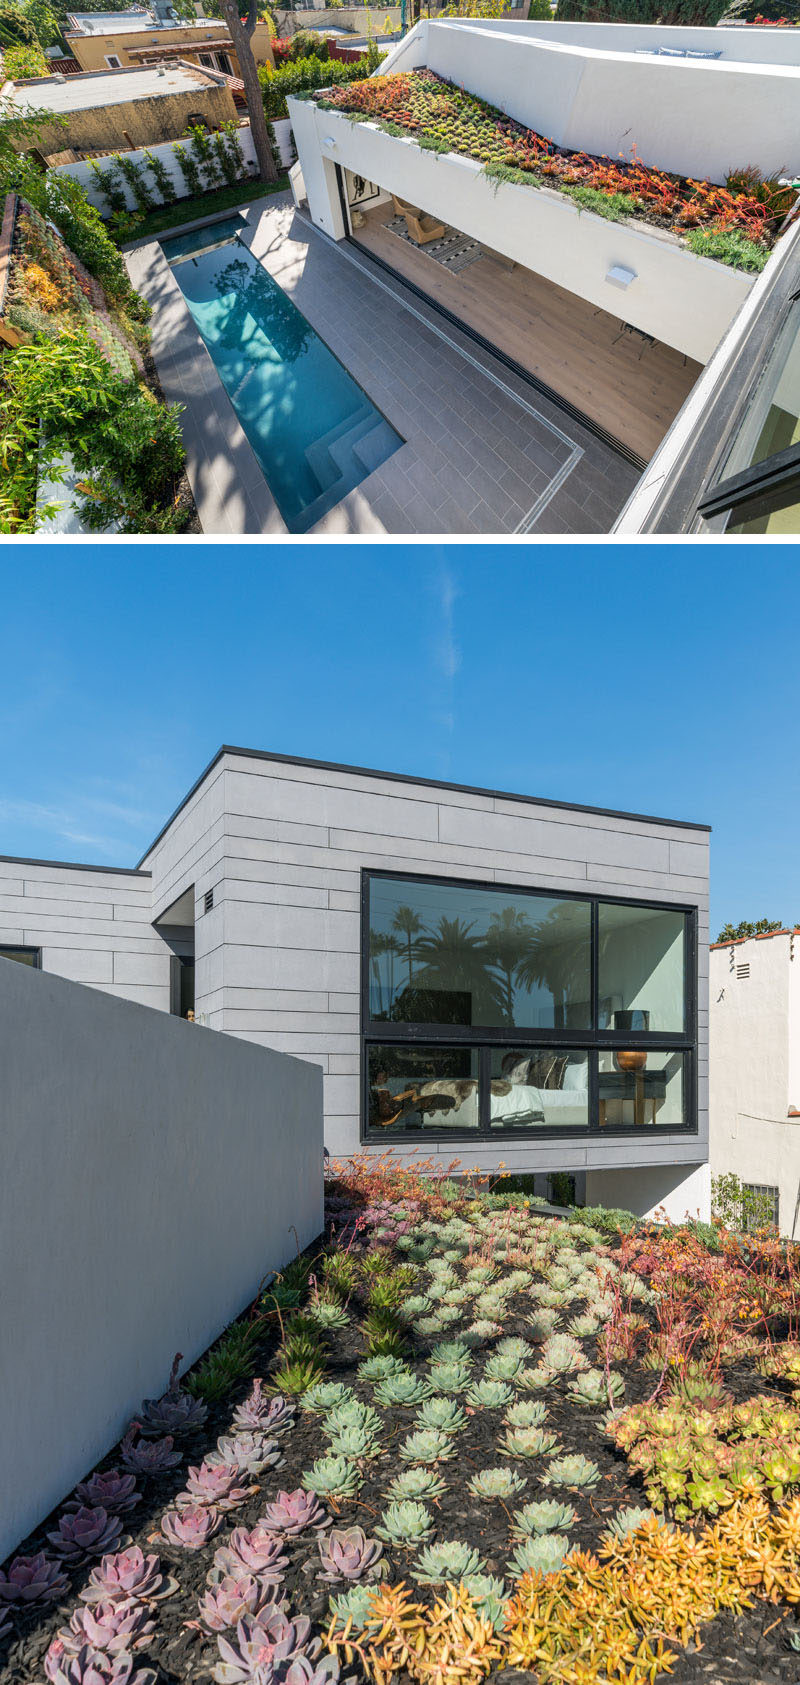 This modern house has a hidden green roof that's filled with succulents. #GreenRoof #Succulents